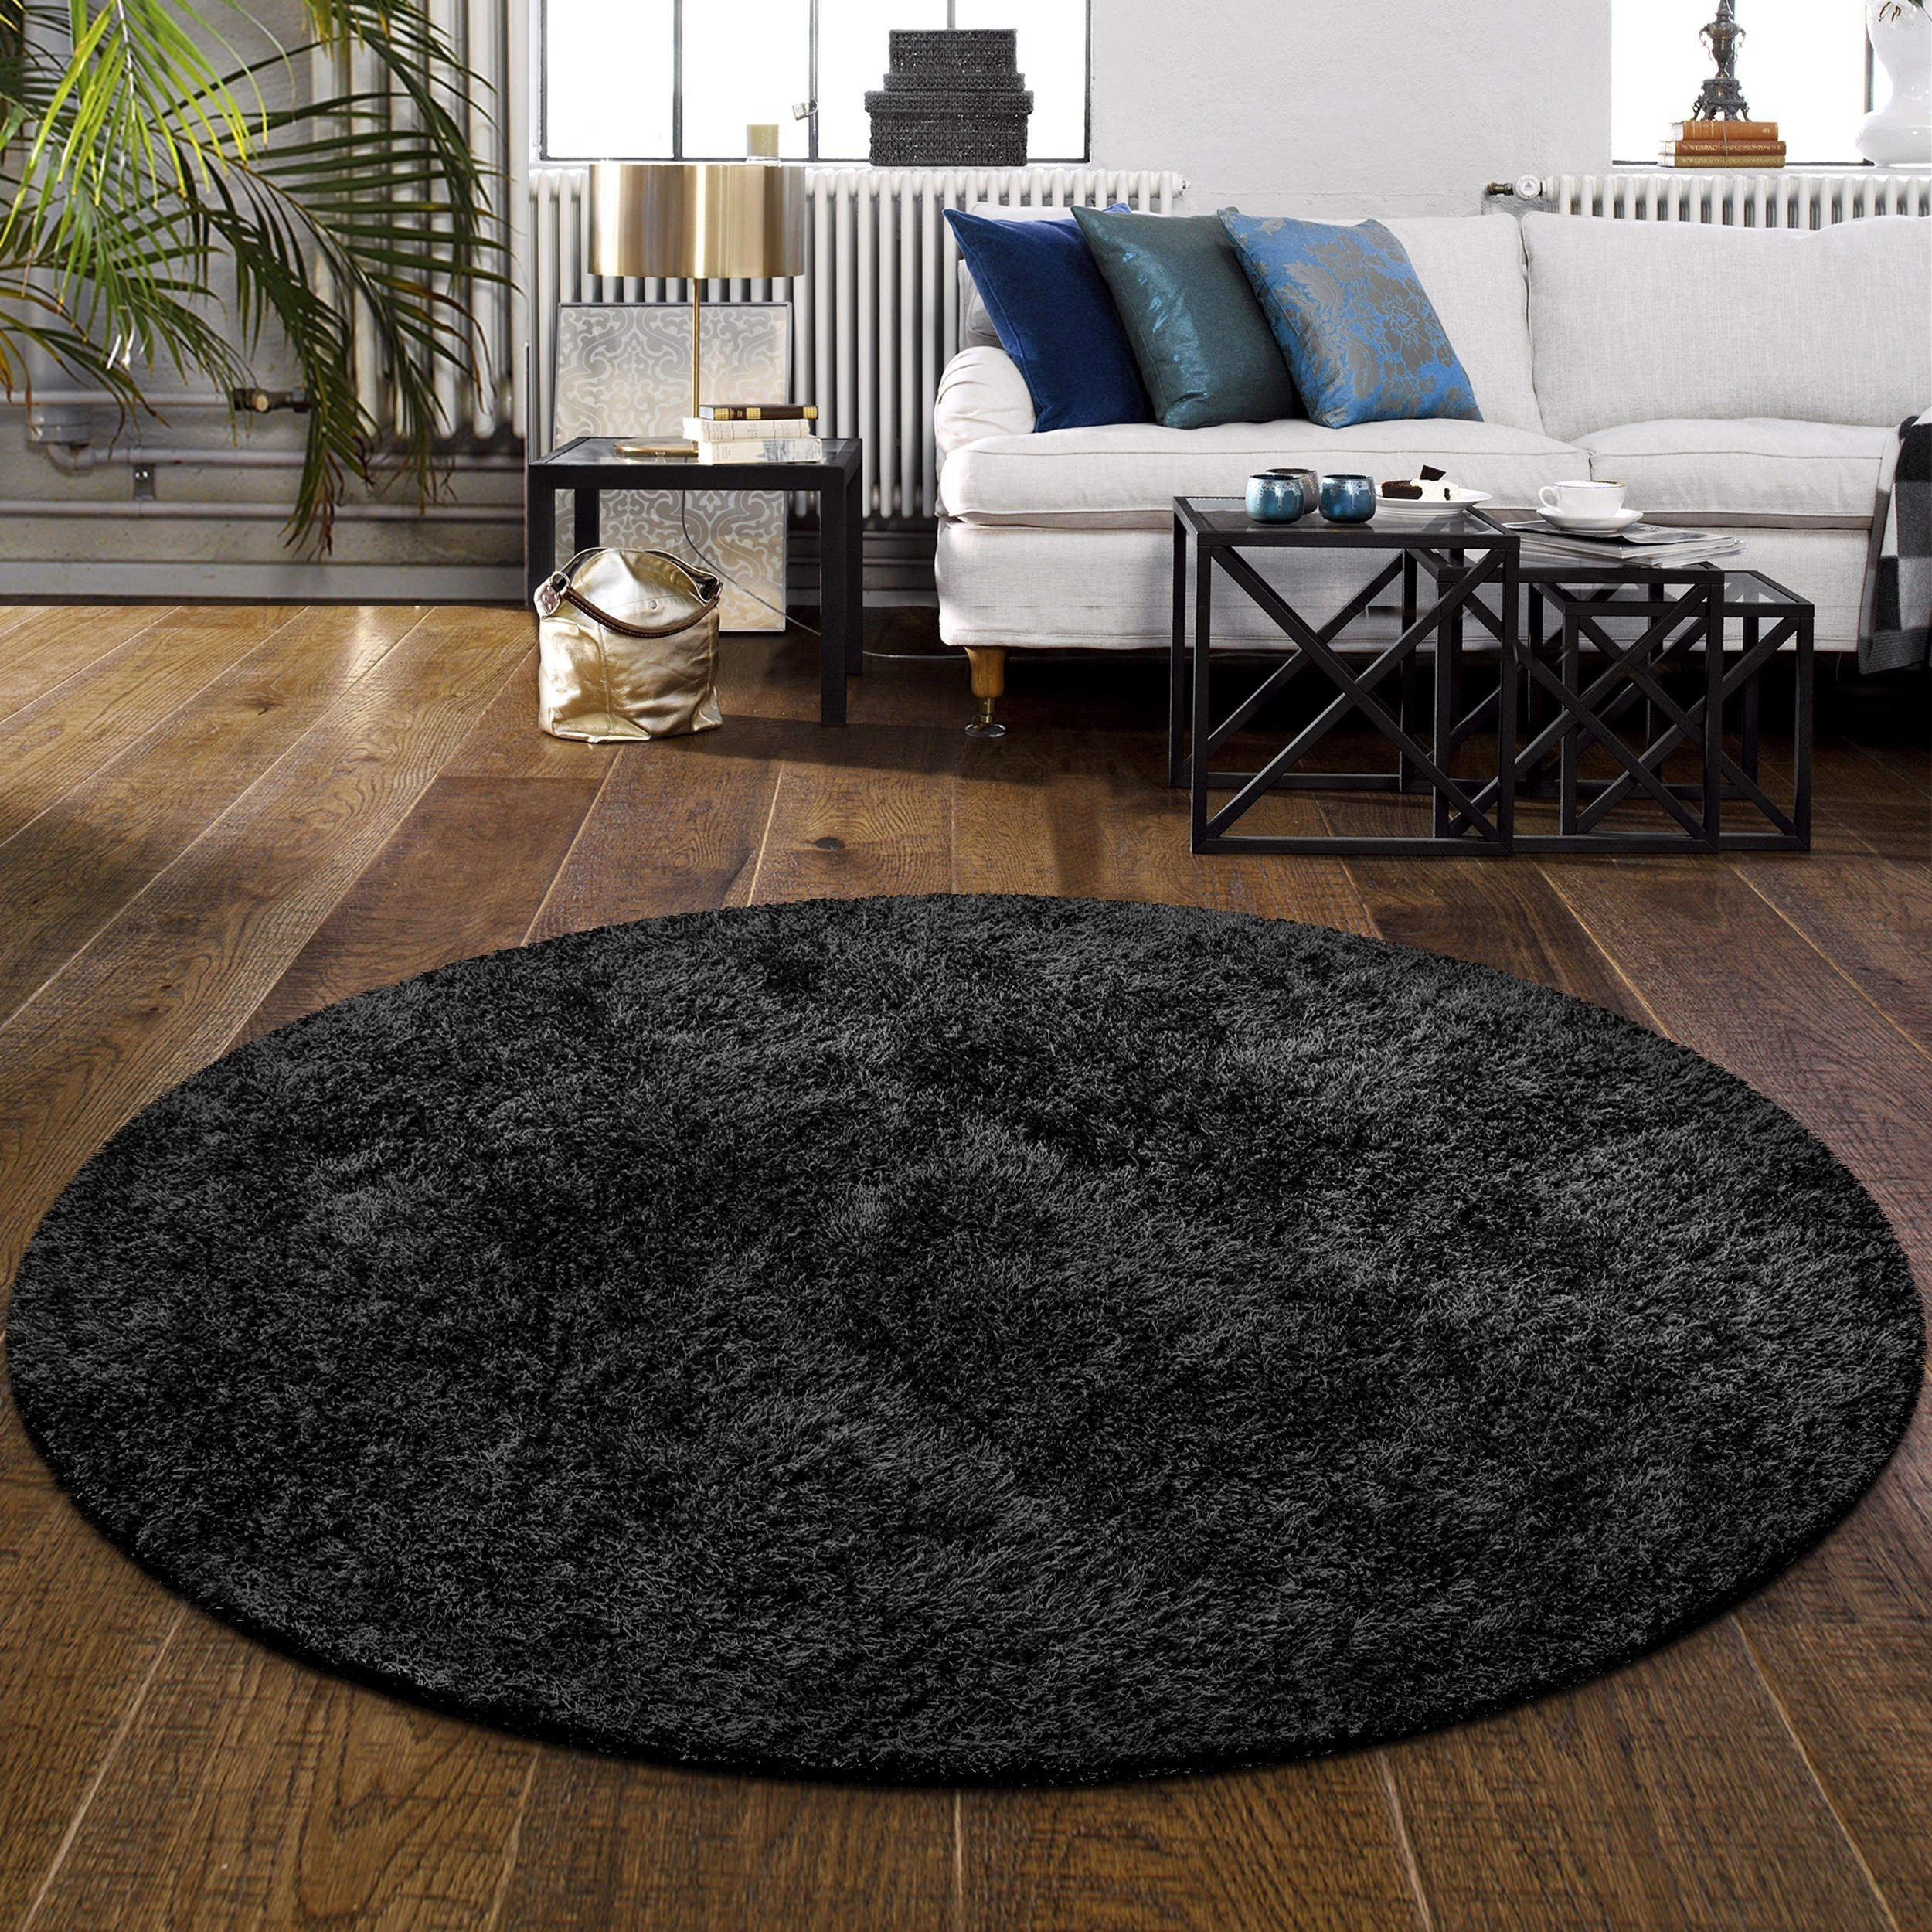 Black Rugs for Bedroom Beautiful Superior Elegant Plush Hand Woven Black Shag Round Rug 4